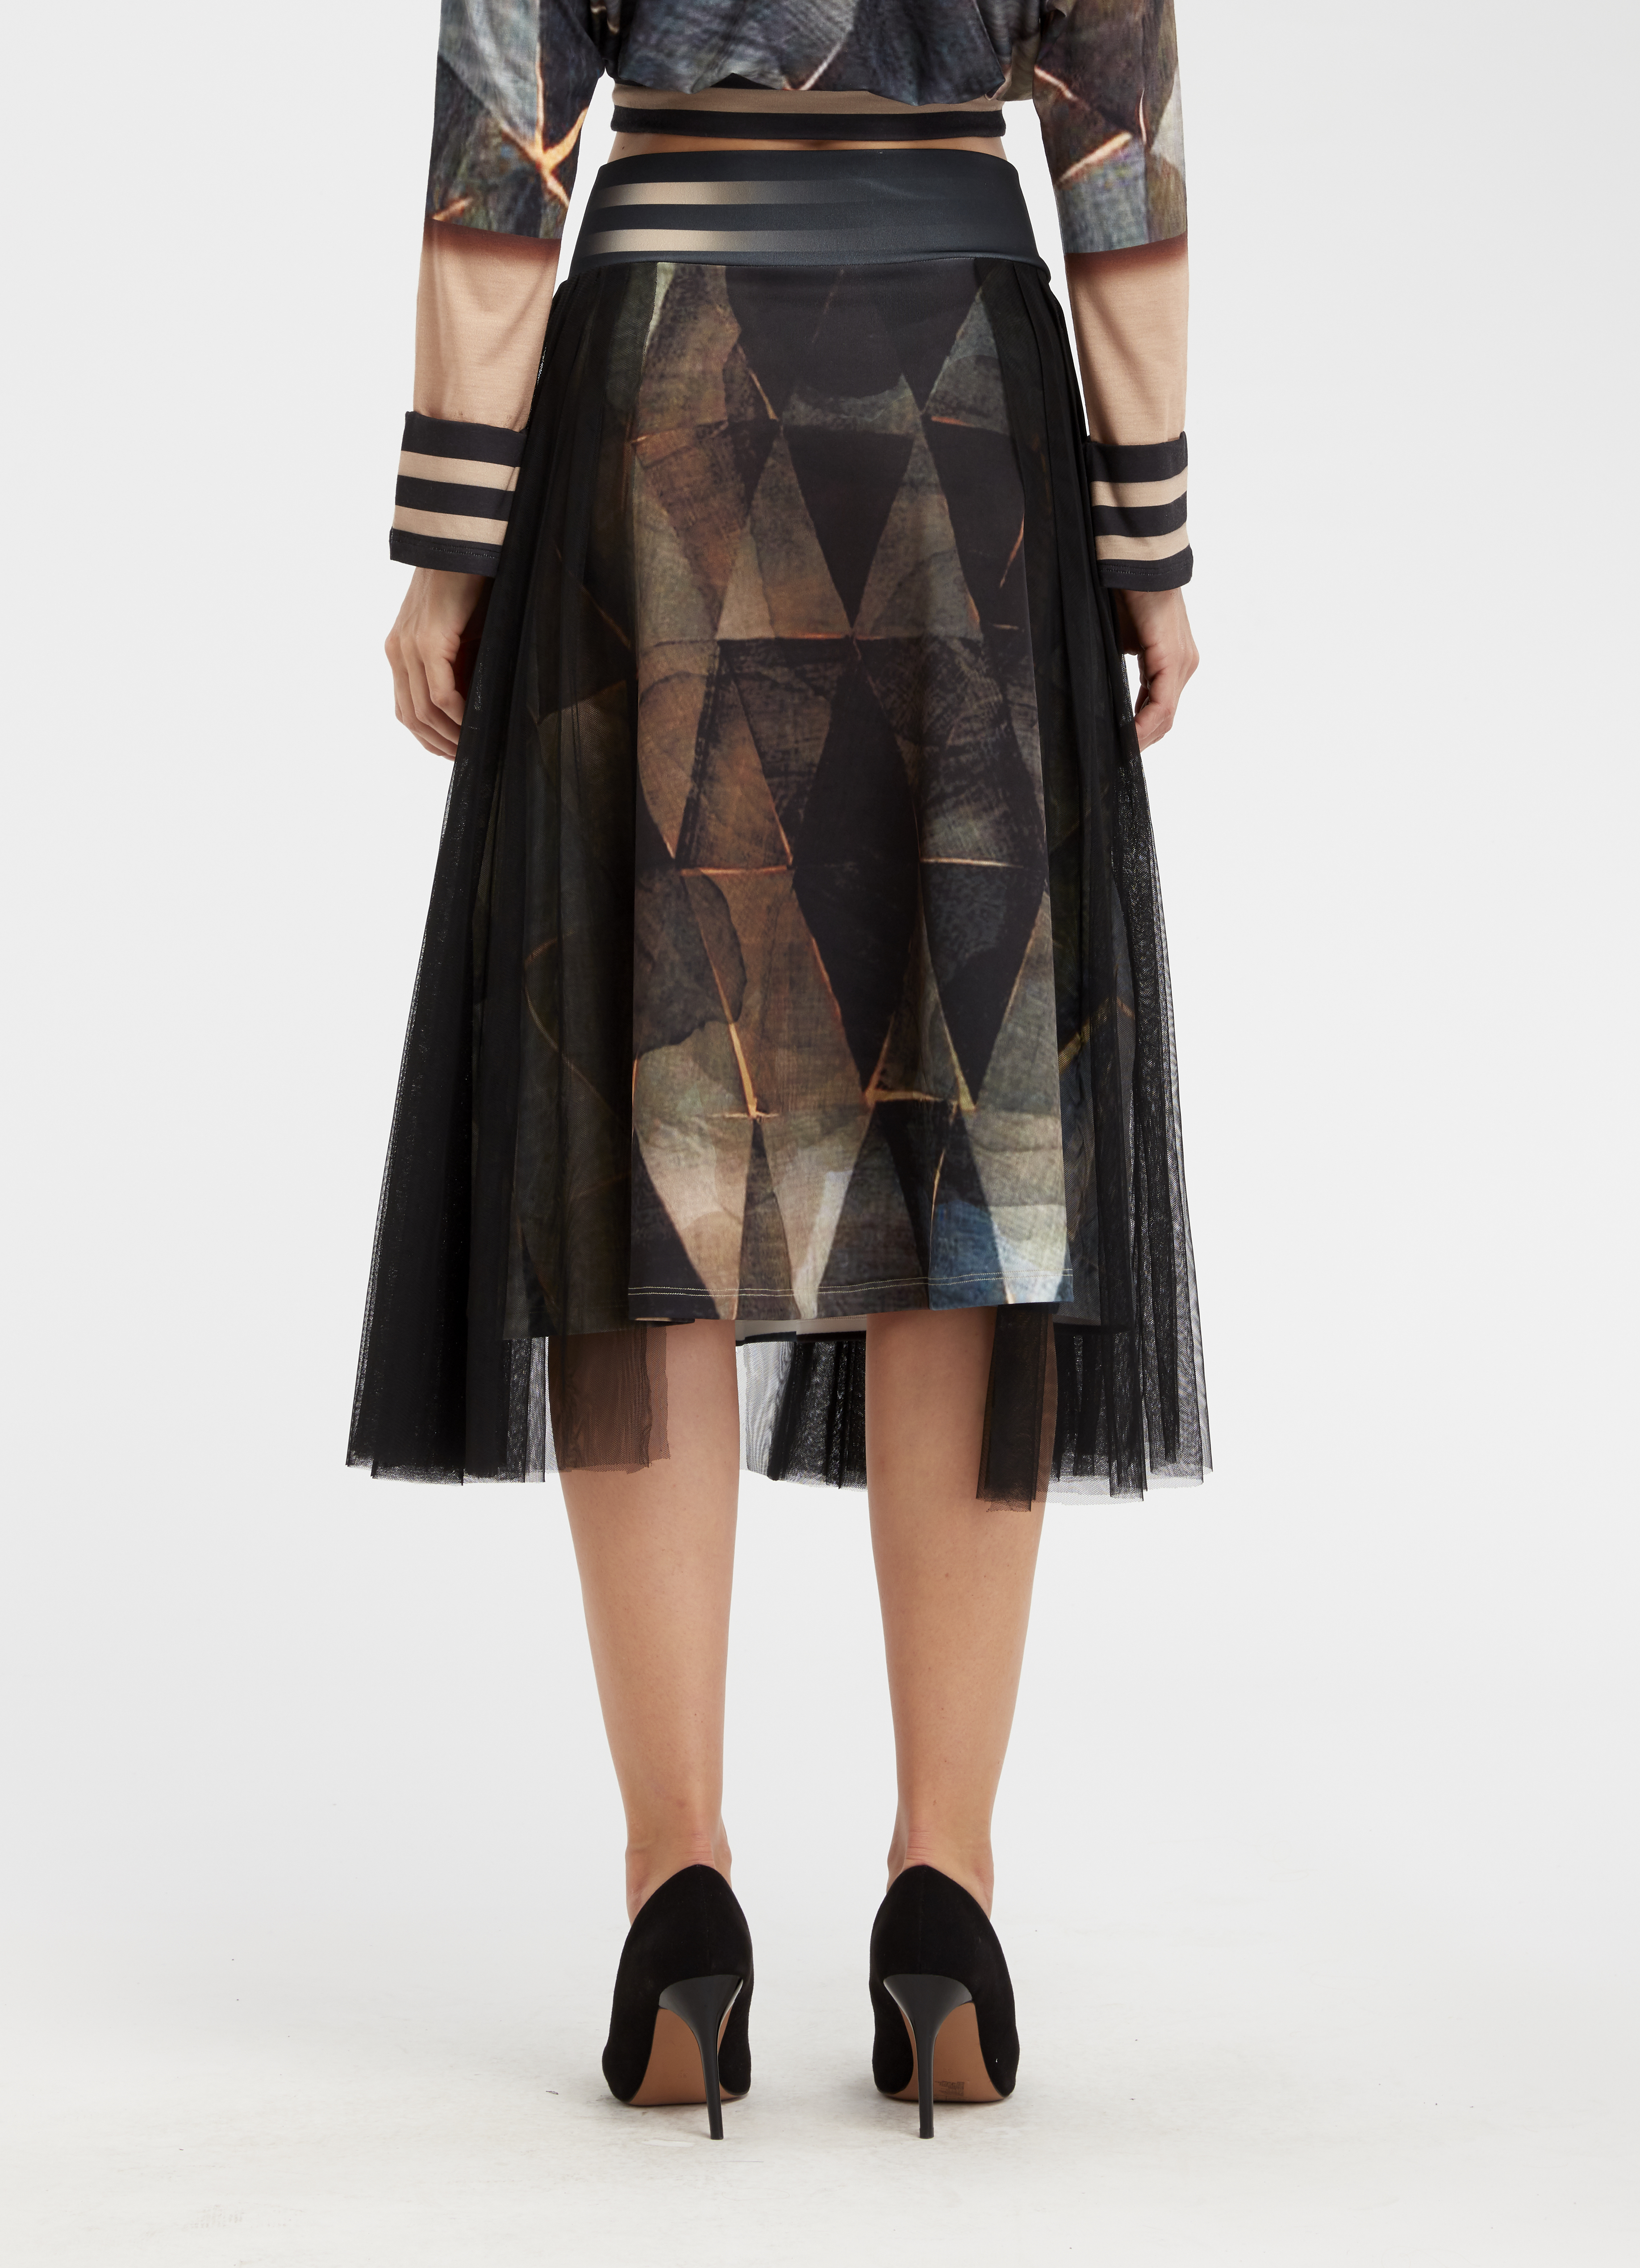 IPNG: Who Is The Woman Behind This Illusion Flared Skirt